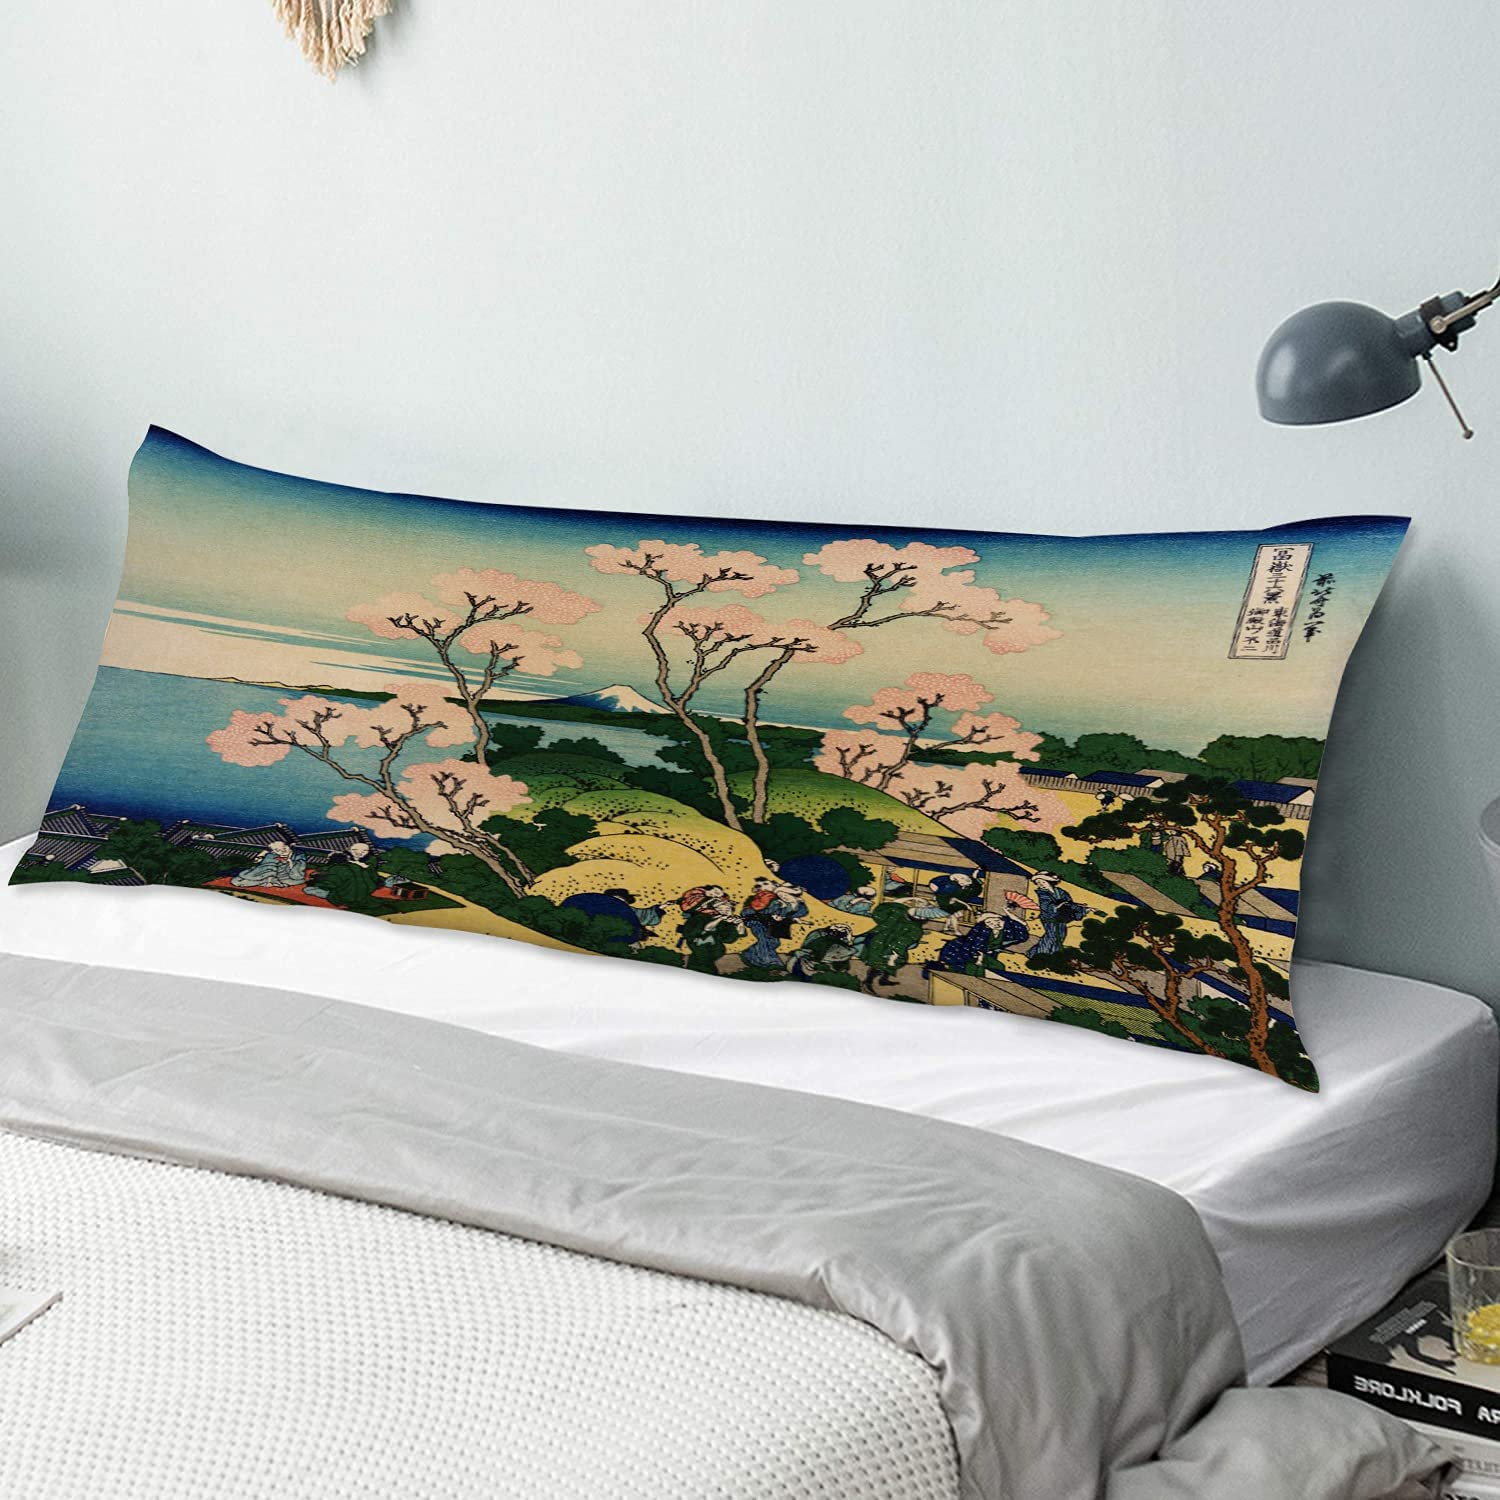 KENADVI Body Pillow Cover Pillowcase Ancient Life Max 76% OFF Japanese Super beauty product restock quality top! Long